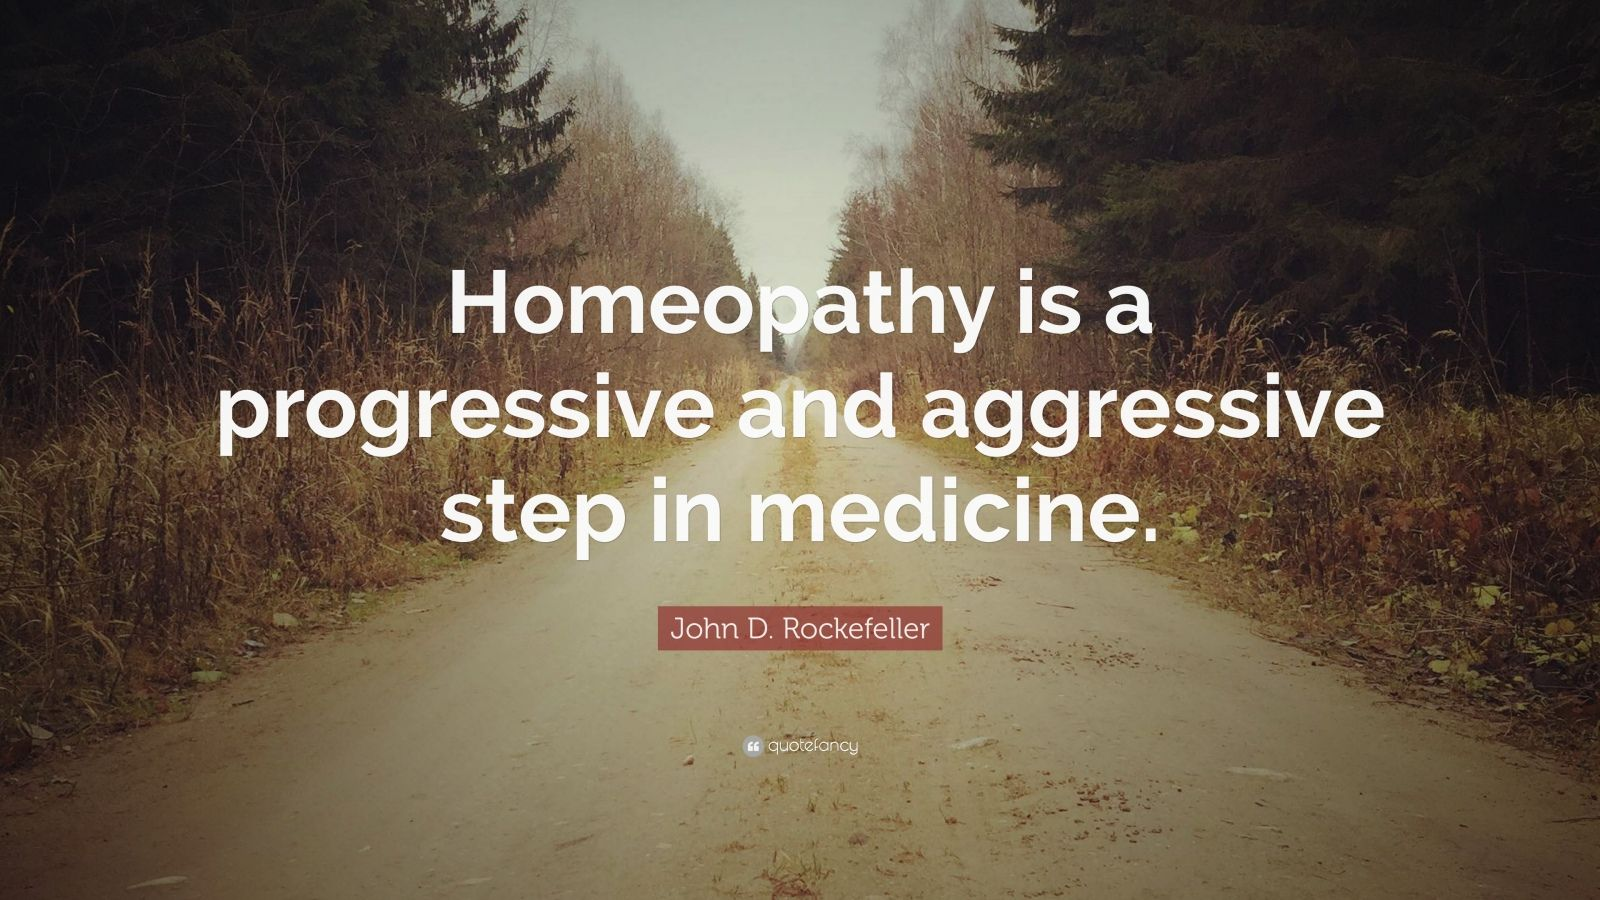 """John D. Rockefeller Quote: """"Homeopathy is a progressive and aggressive step in medicine."""""""